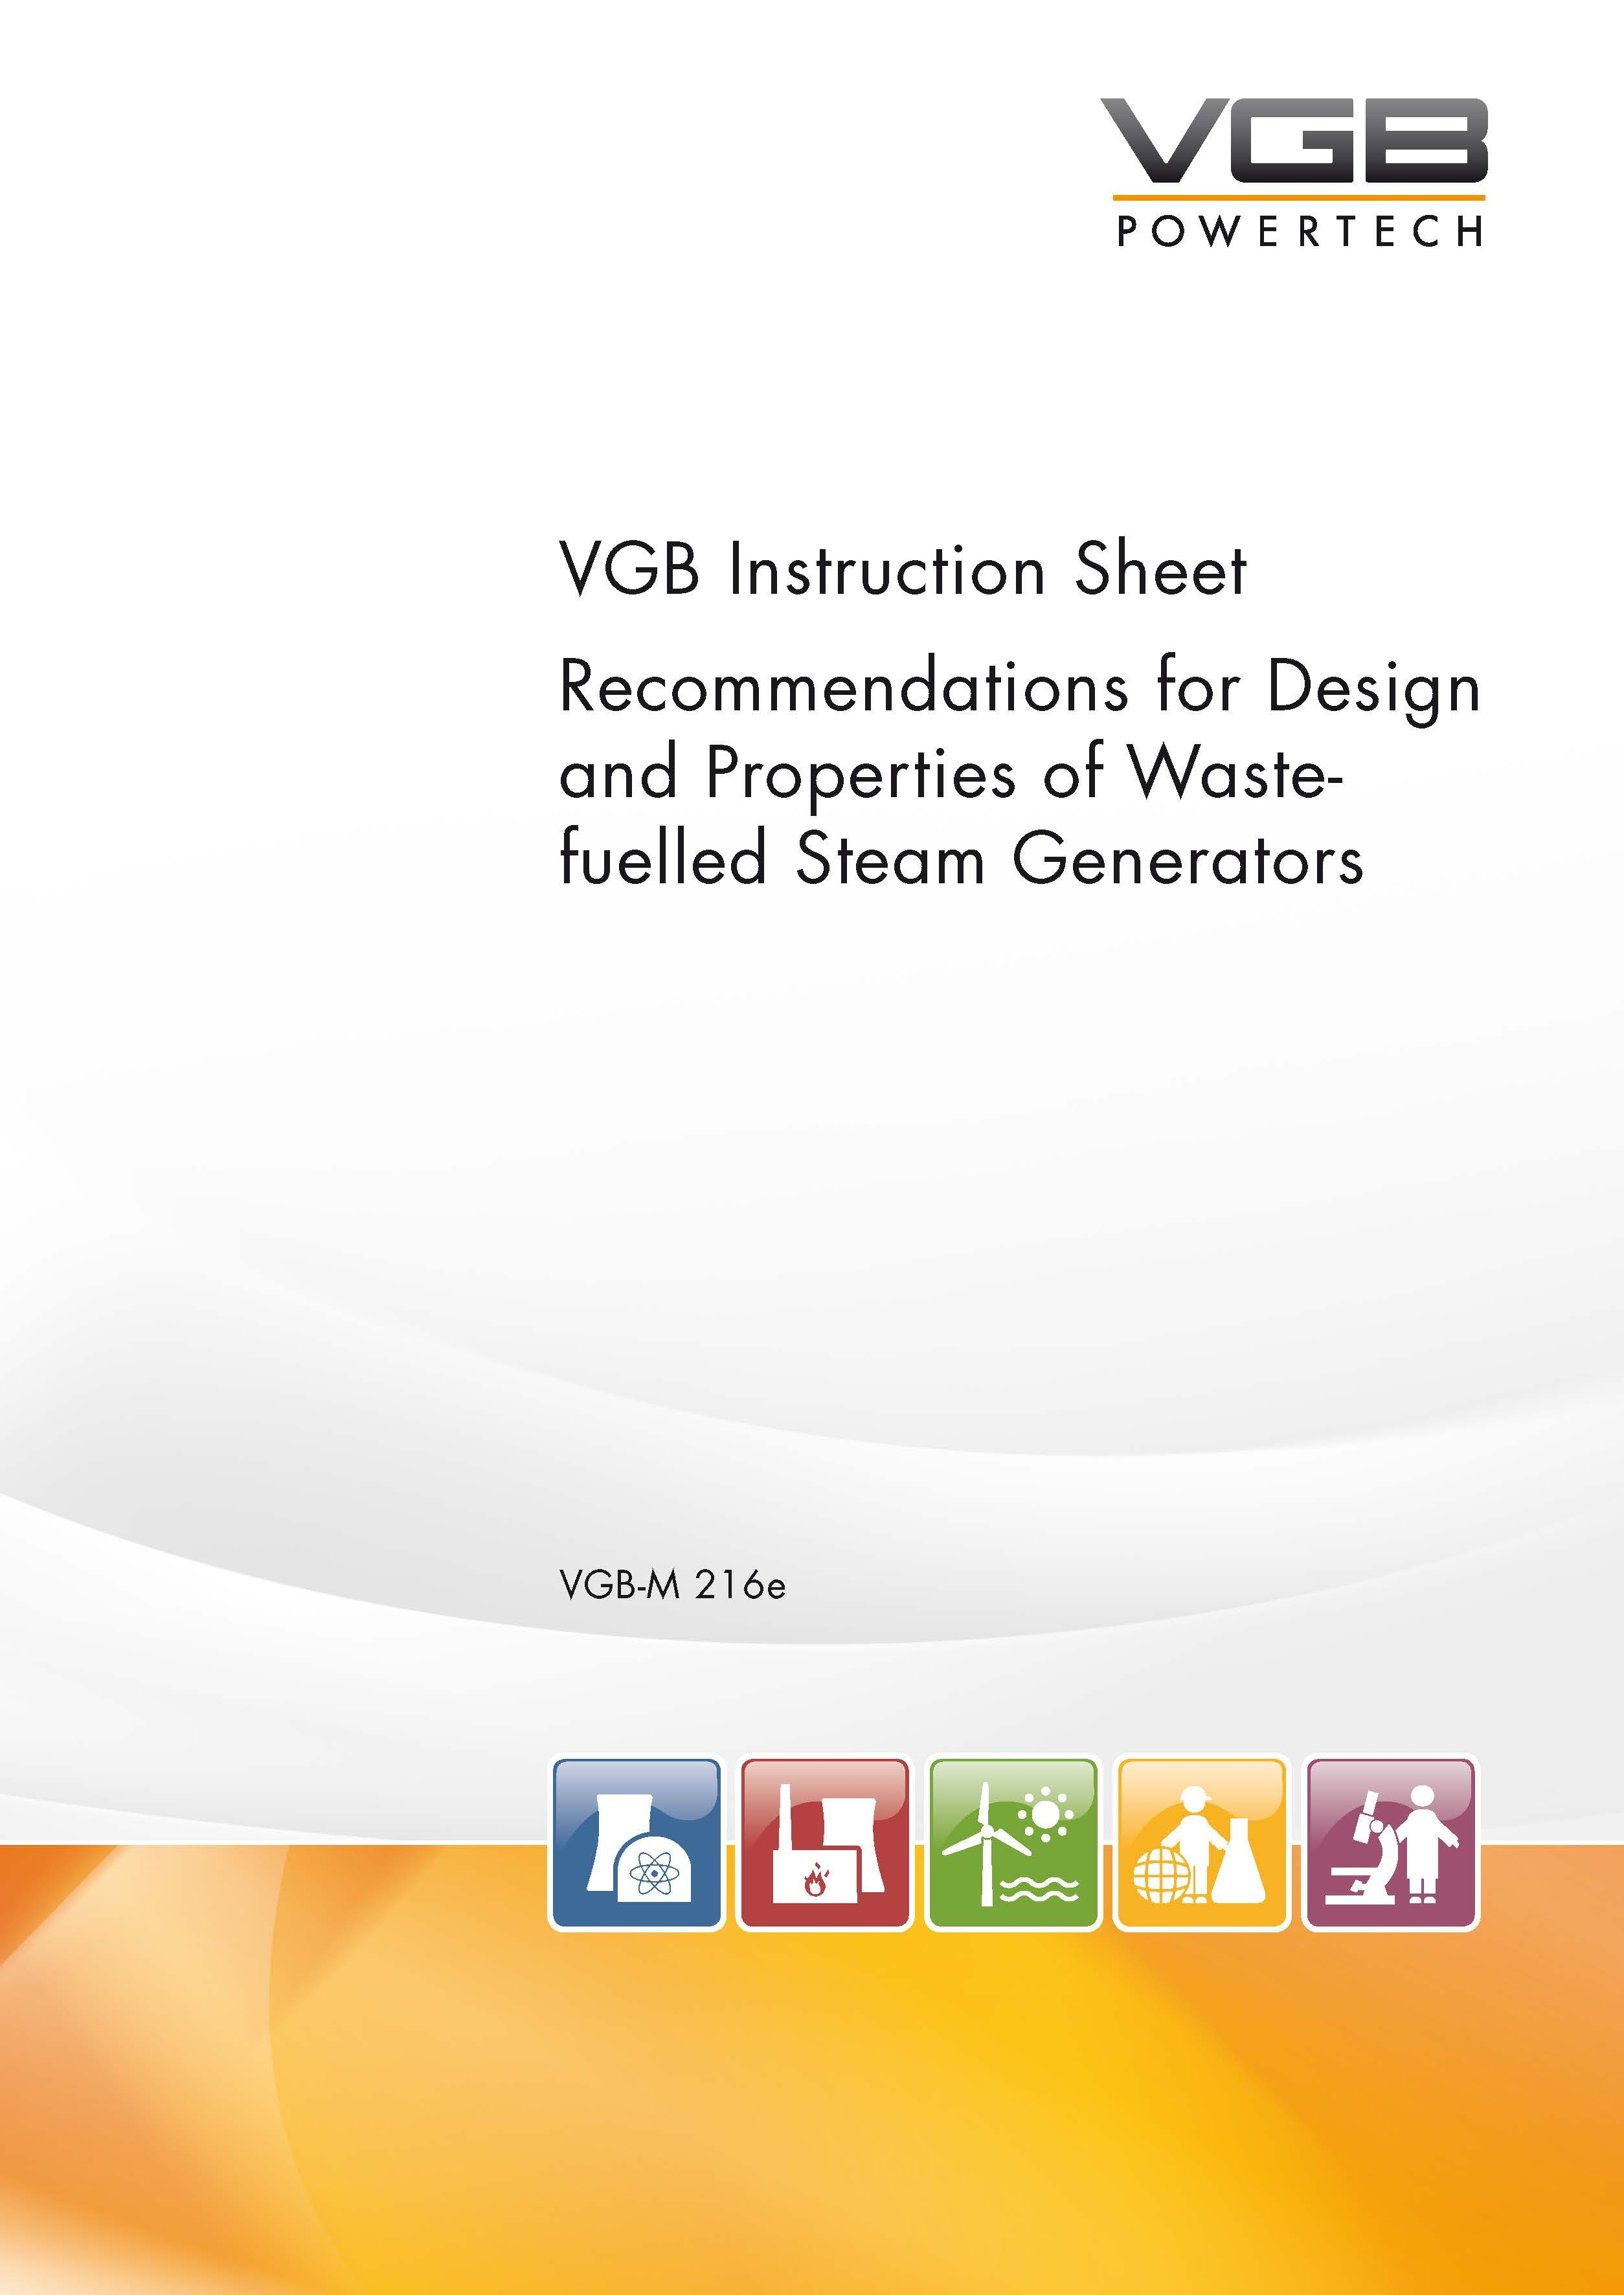 Recommendations for Design and Properties of Waste-fuelled Steam Generators - Second Edition 2009